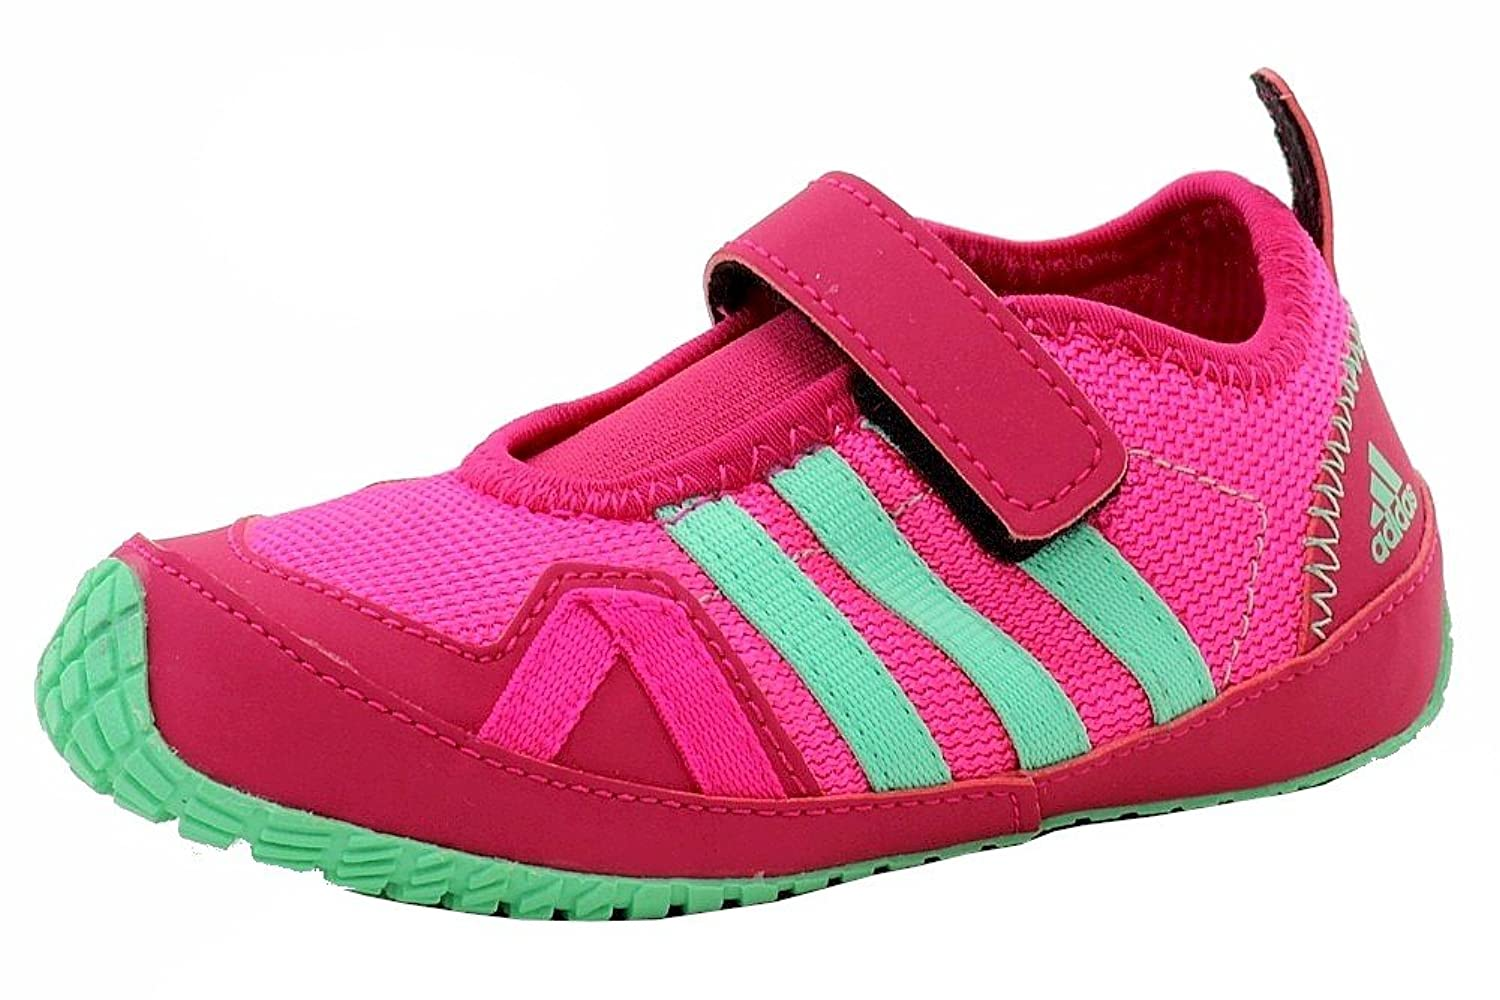 Adidas Toddler Girl's Boat AC I Shock Pink/Green Glow/Bold Pink Water Shoes